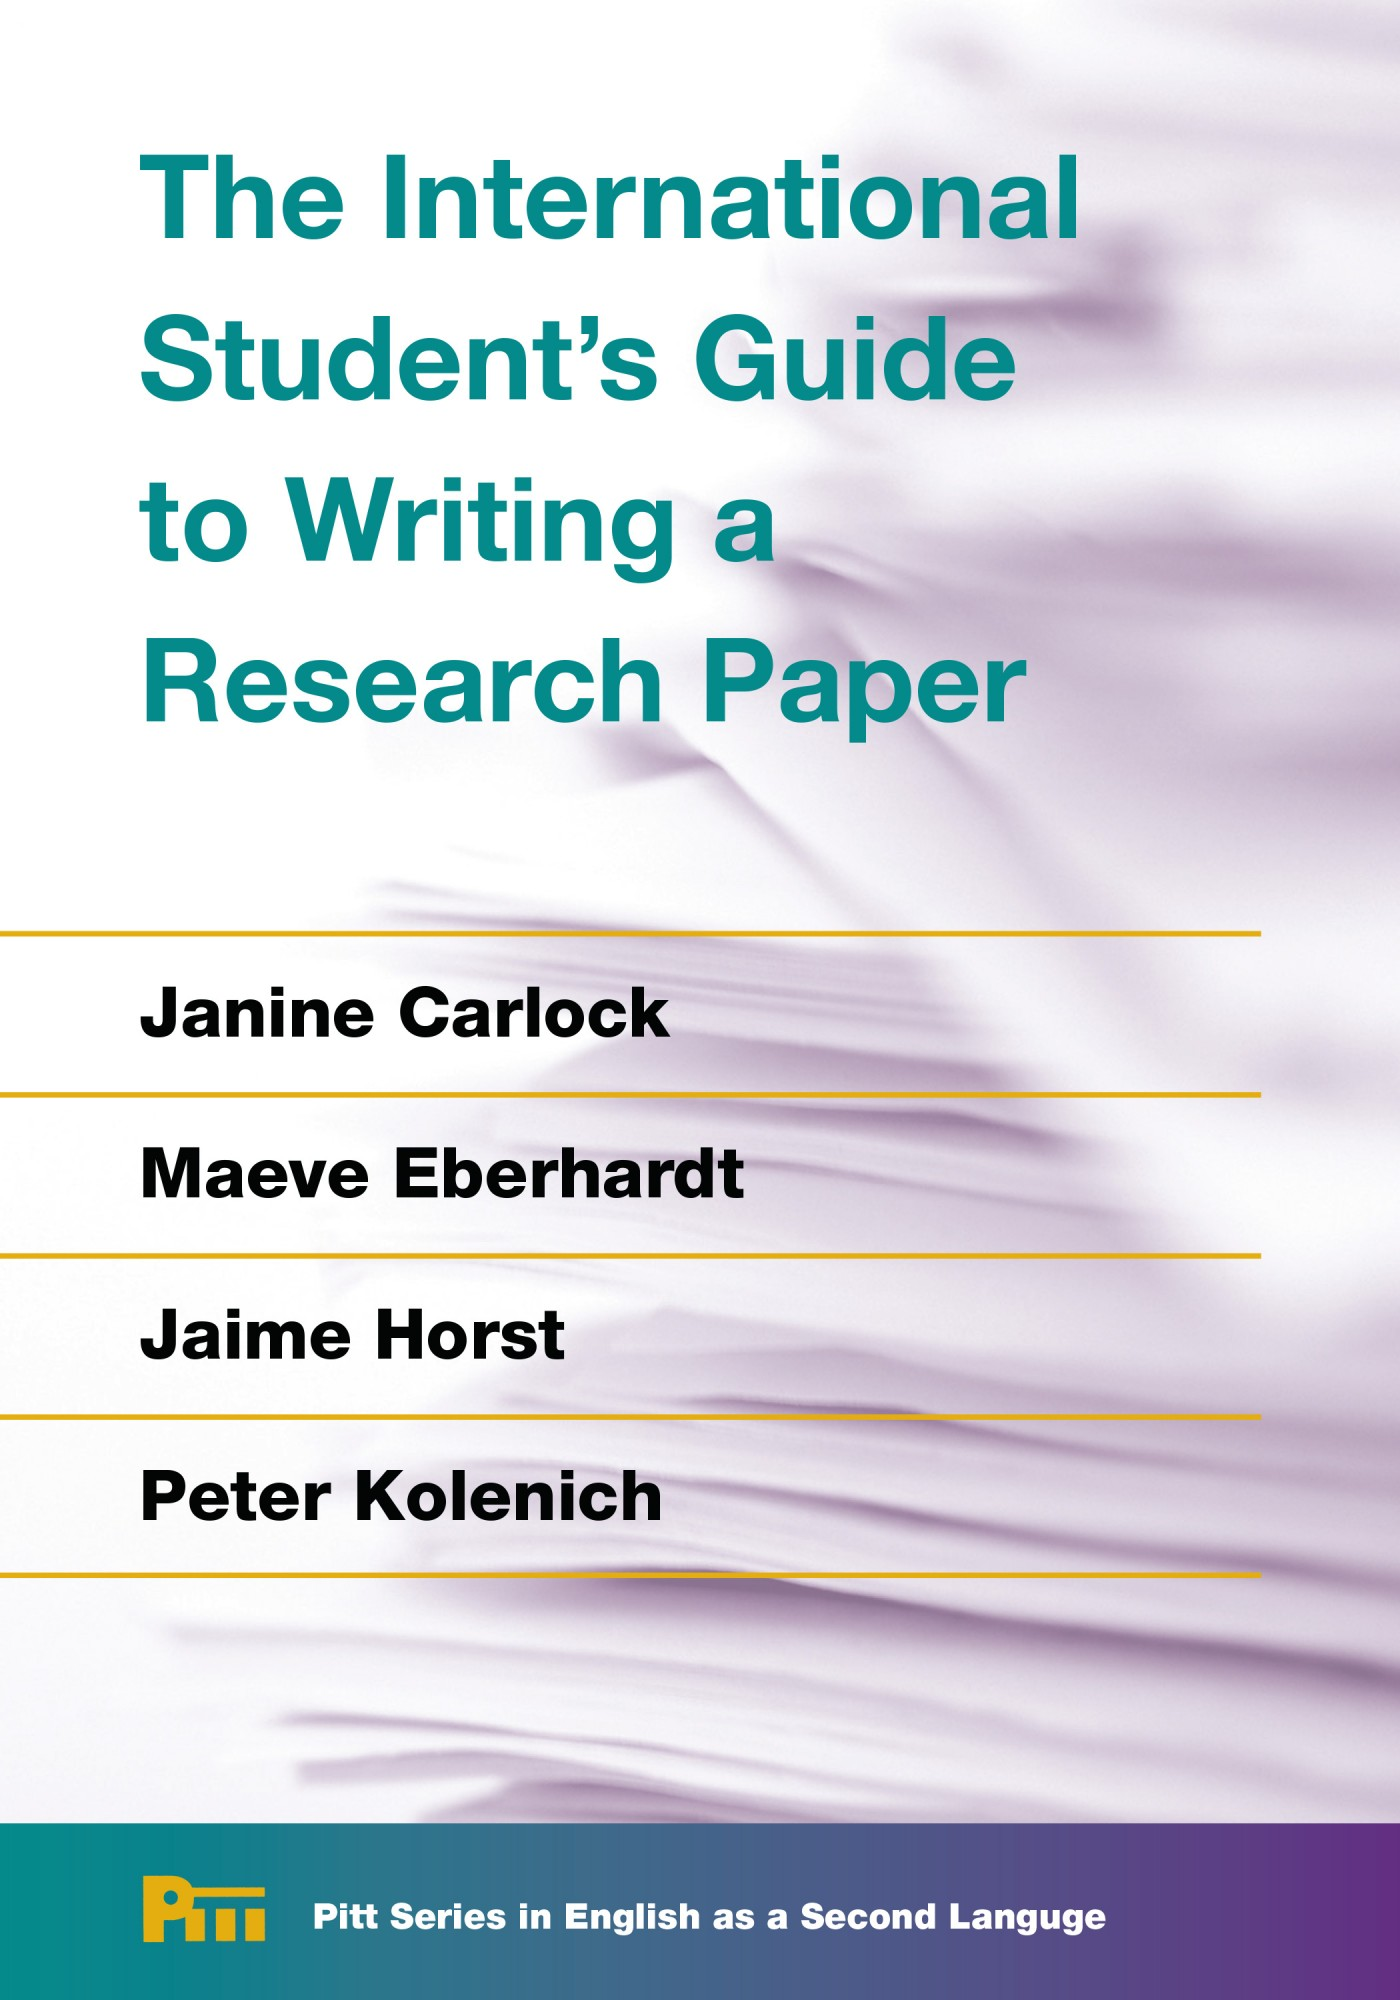 013 Writing The Research Paper Phenomenal How To Write Outline A Pdf Handbook 8th Edition 1400